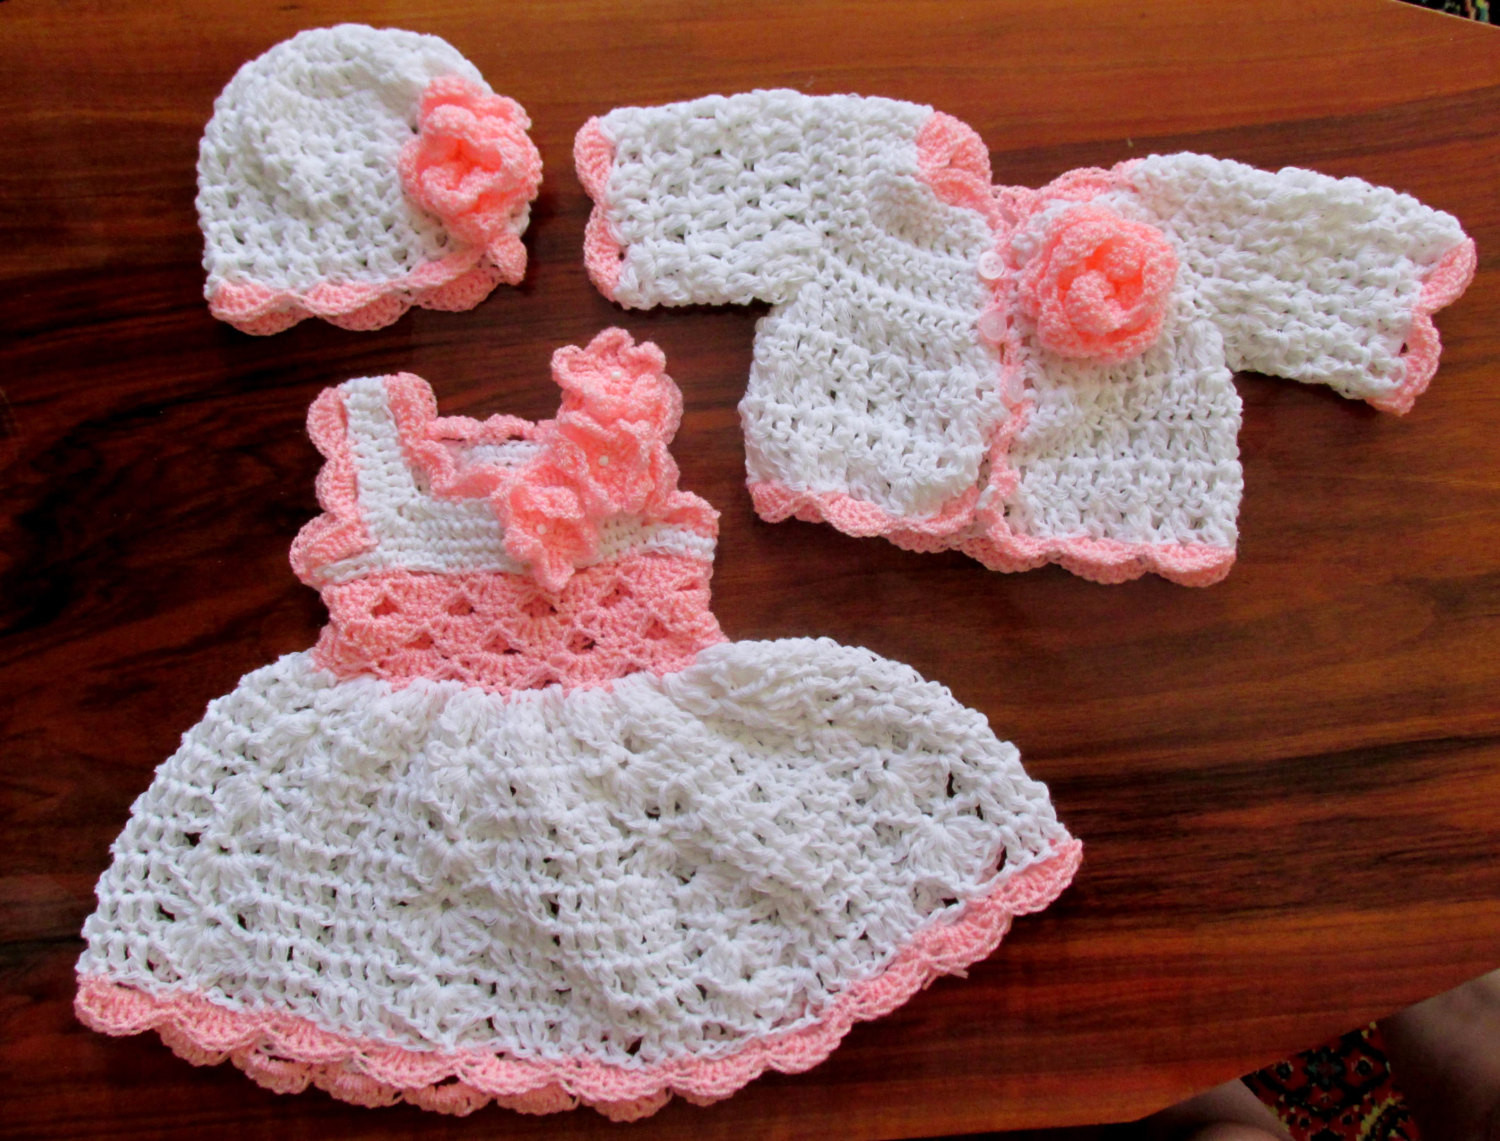 Crochet Baby Outfits Awesome Baby Girl Outfit Crochet Baby Outfit White Baby Cardigan Of Marvelous 44 Photos Crochet Baby Outfits